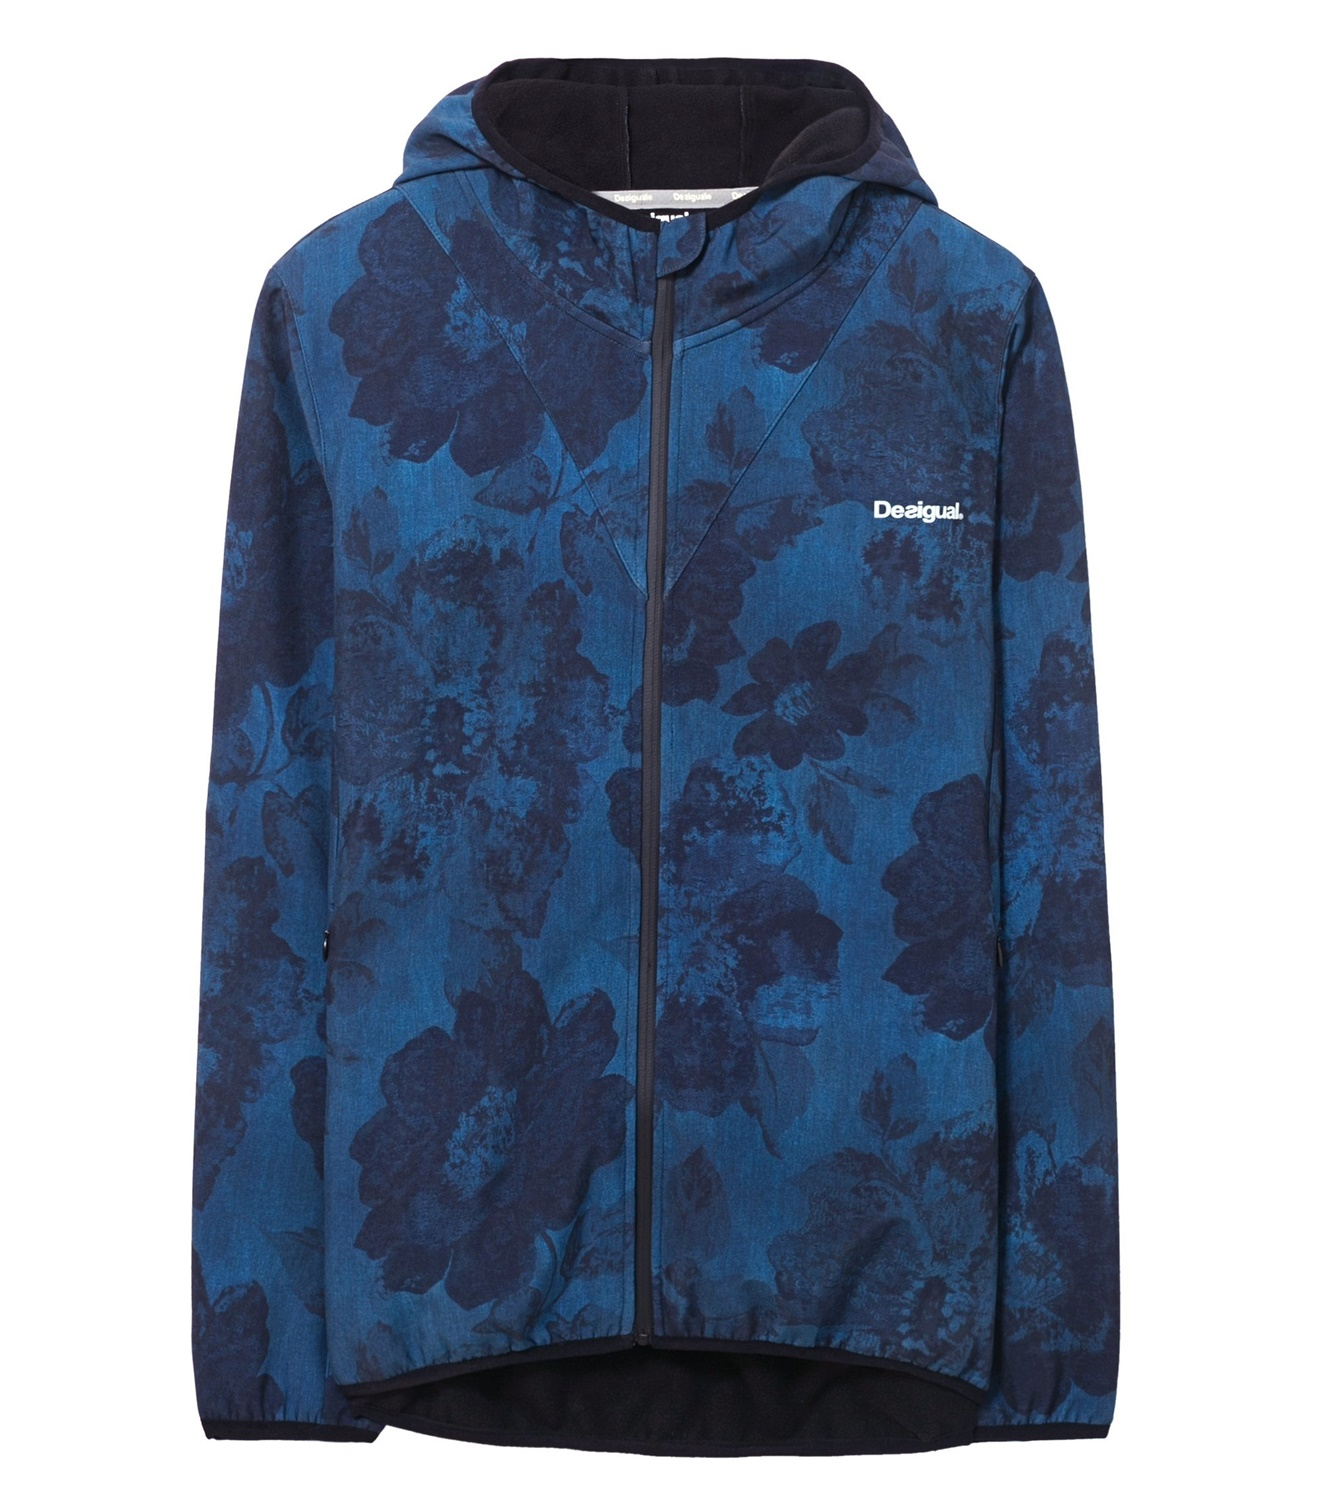 Desigual Jacket Soft Shell Dark Denim